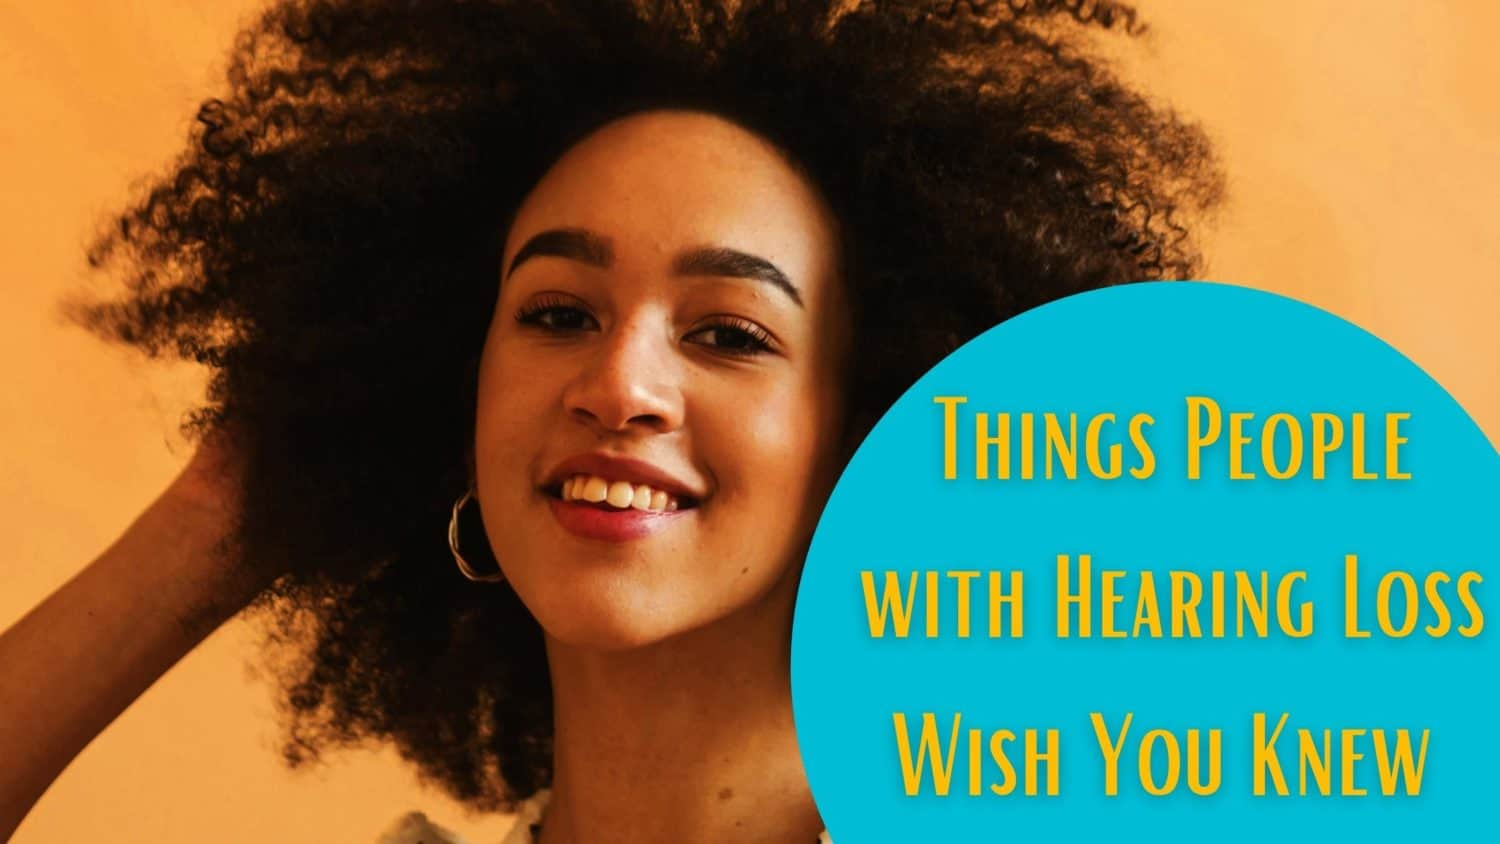 Things People with Hearing Loss Wish You Knew